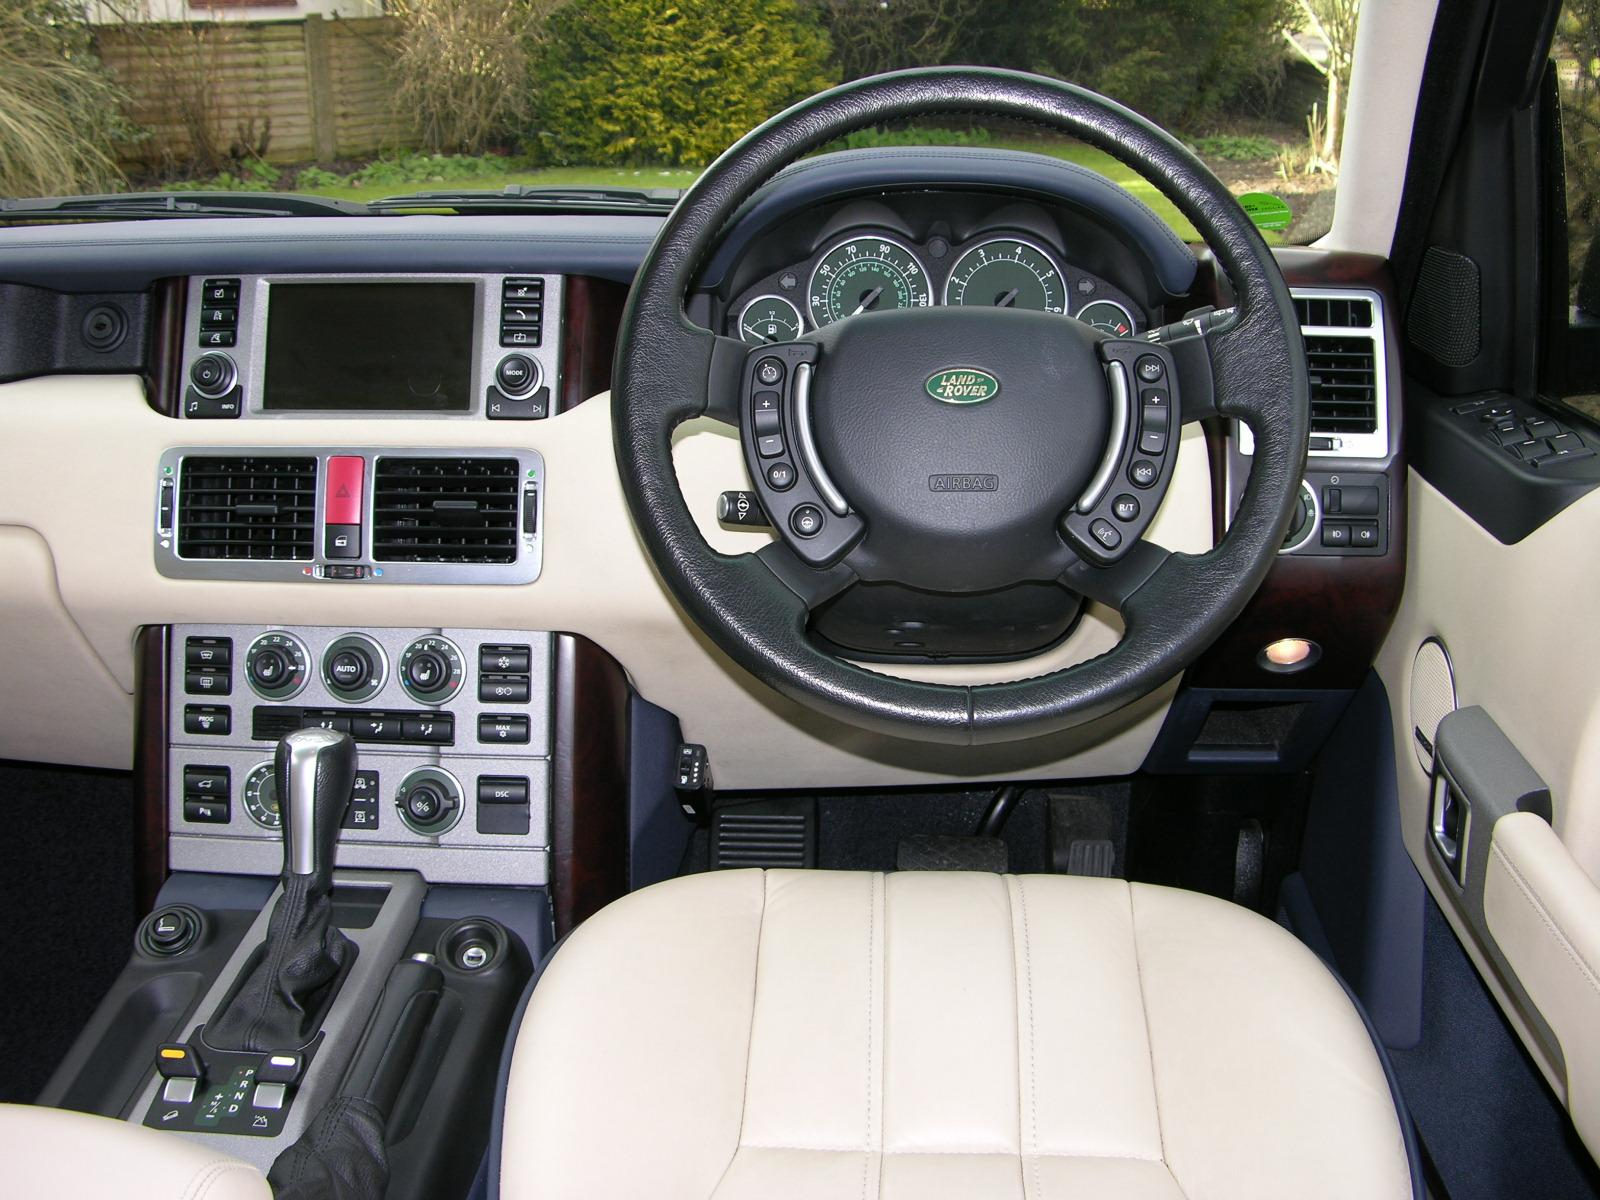 2004 Range Rover Car Interior Design